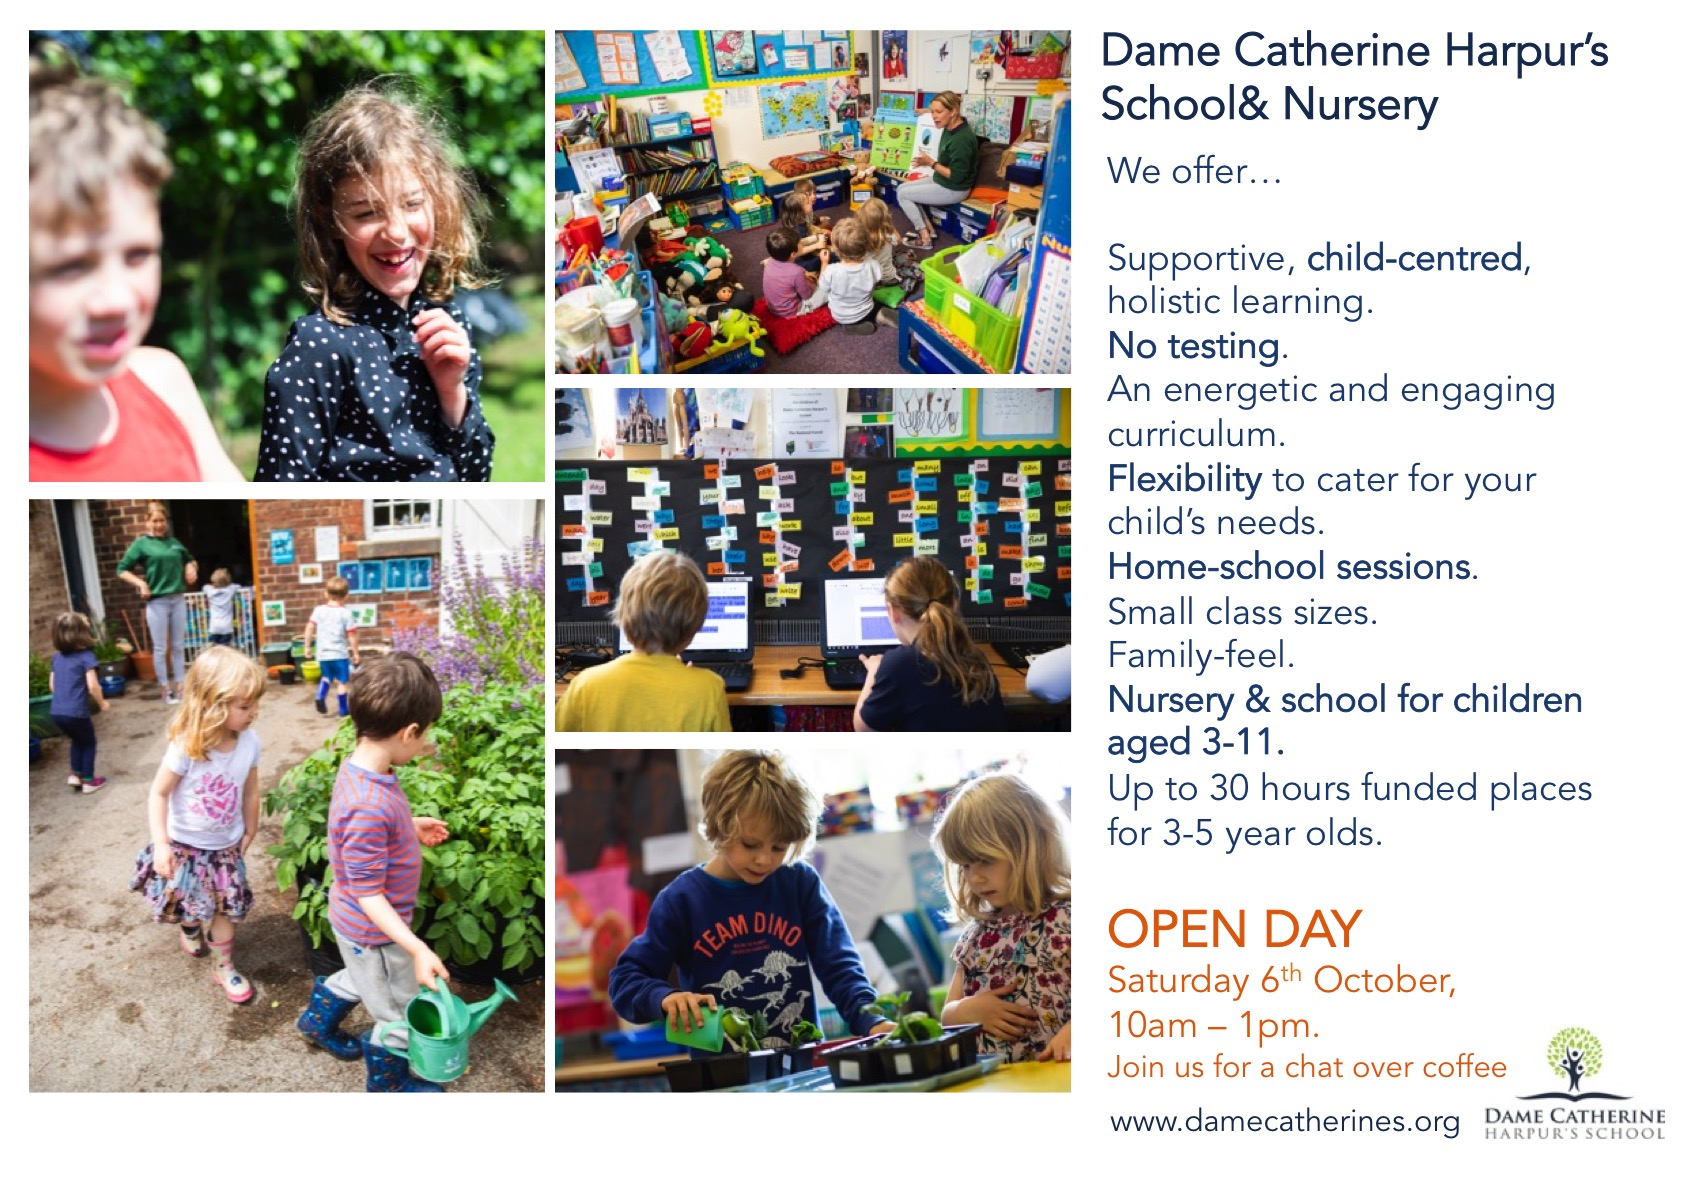 Open Day Sat 6th Oct 10am - 1pm